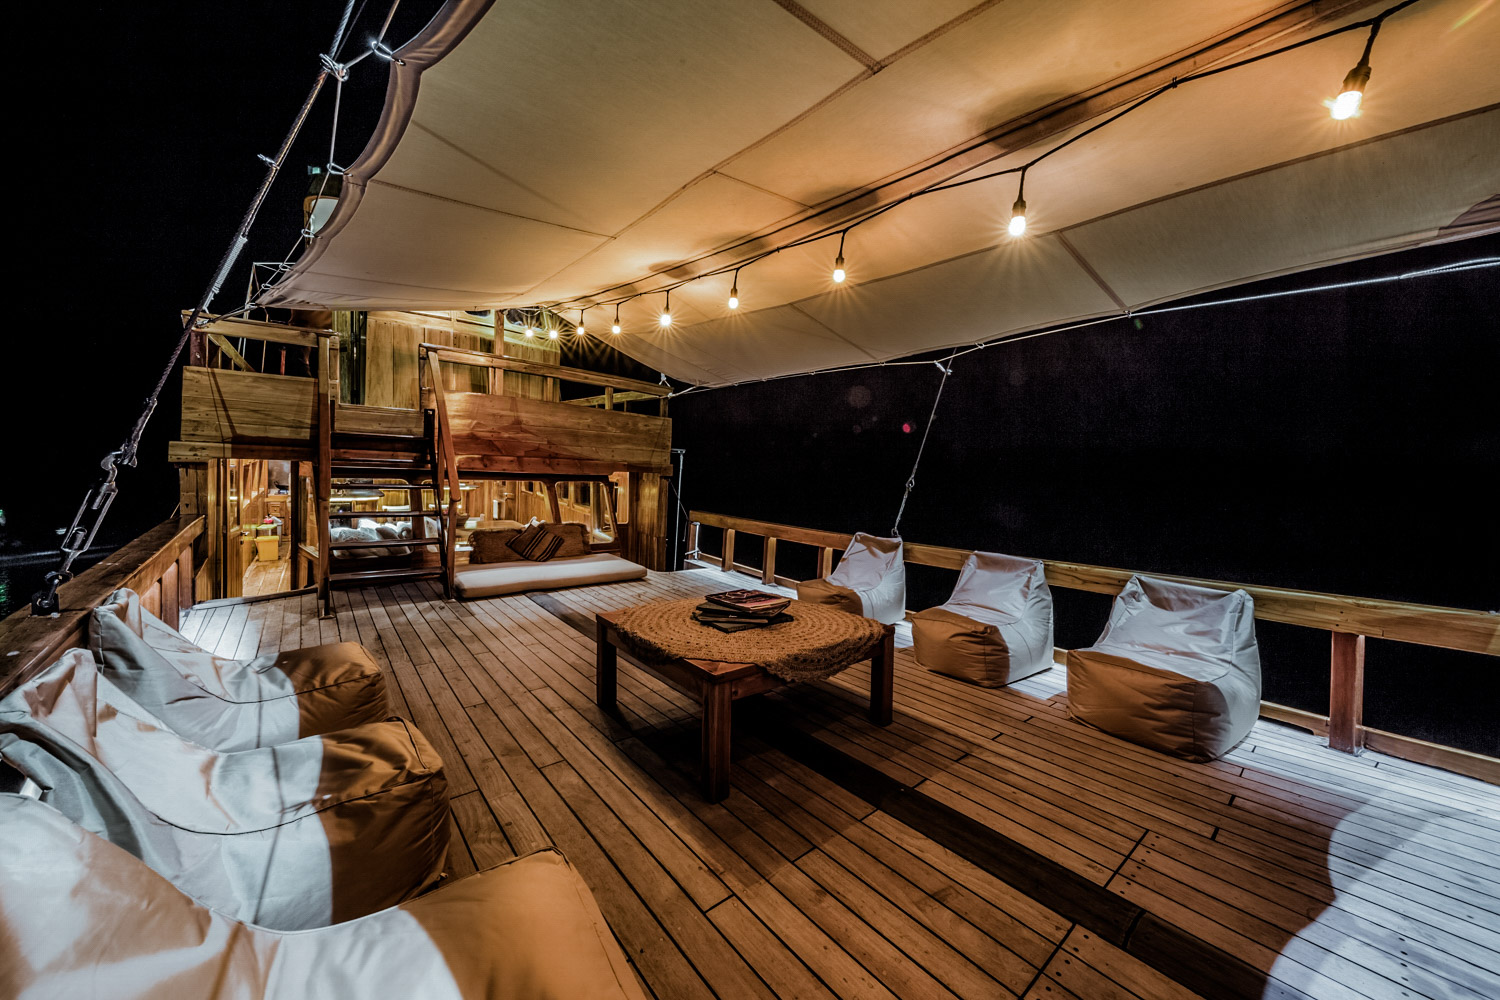 Kelana - Private Boat Charter to diving and liveaboard in Komodo National Park-2946.jpg